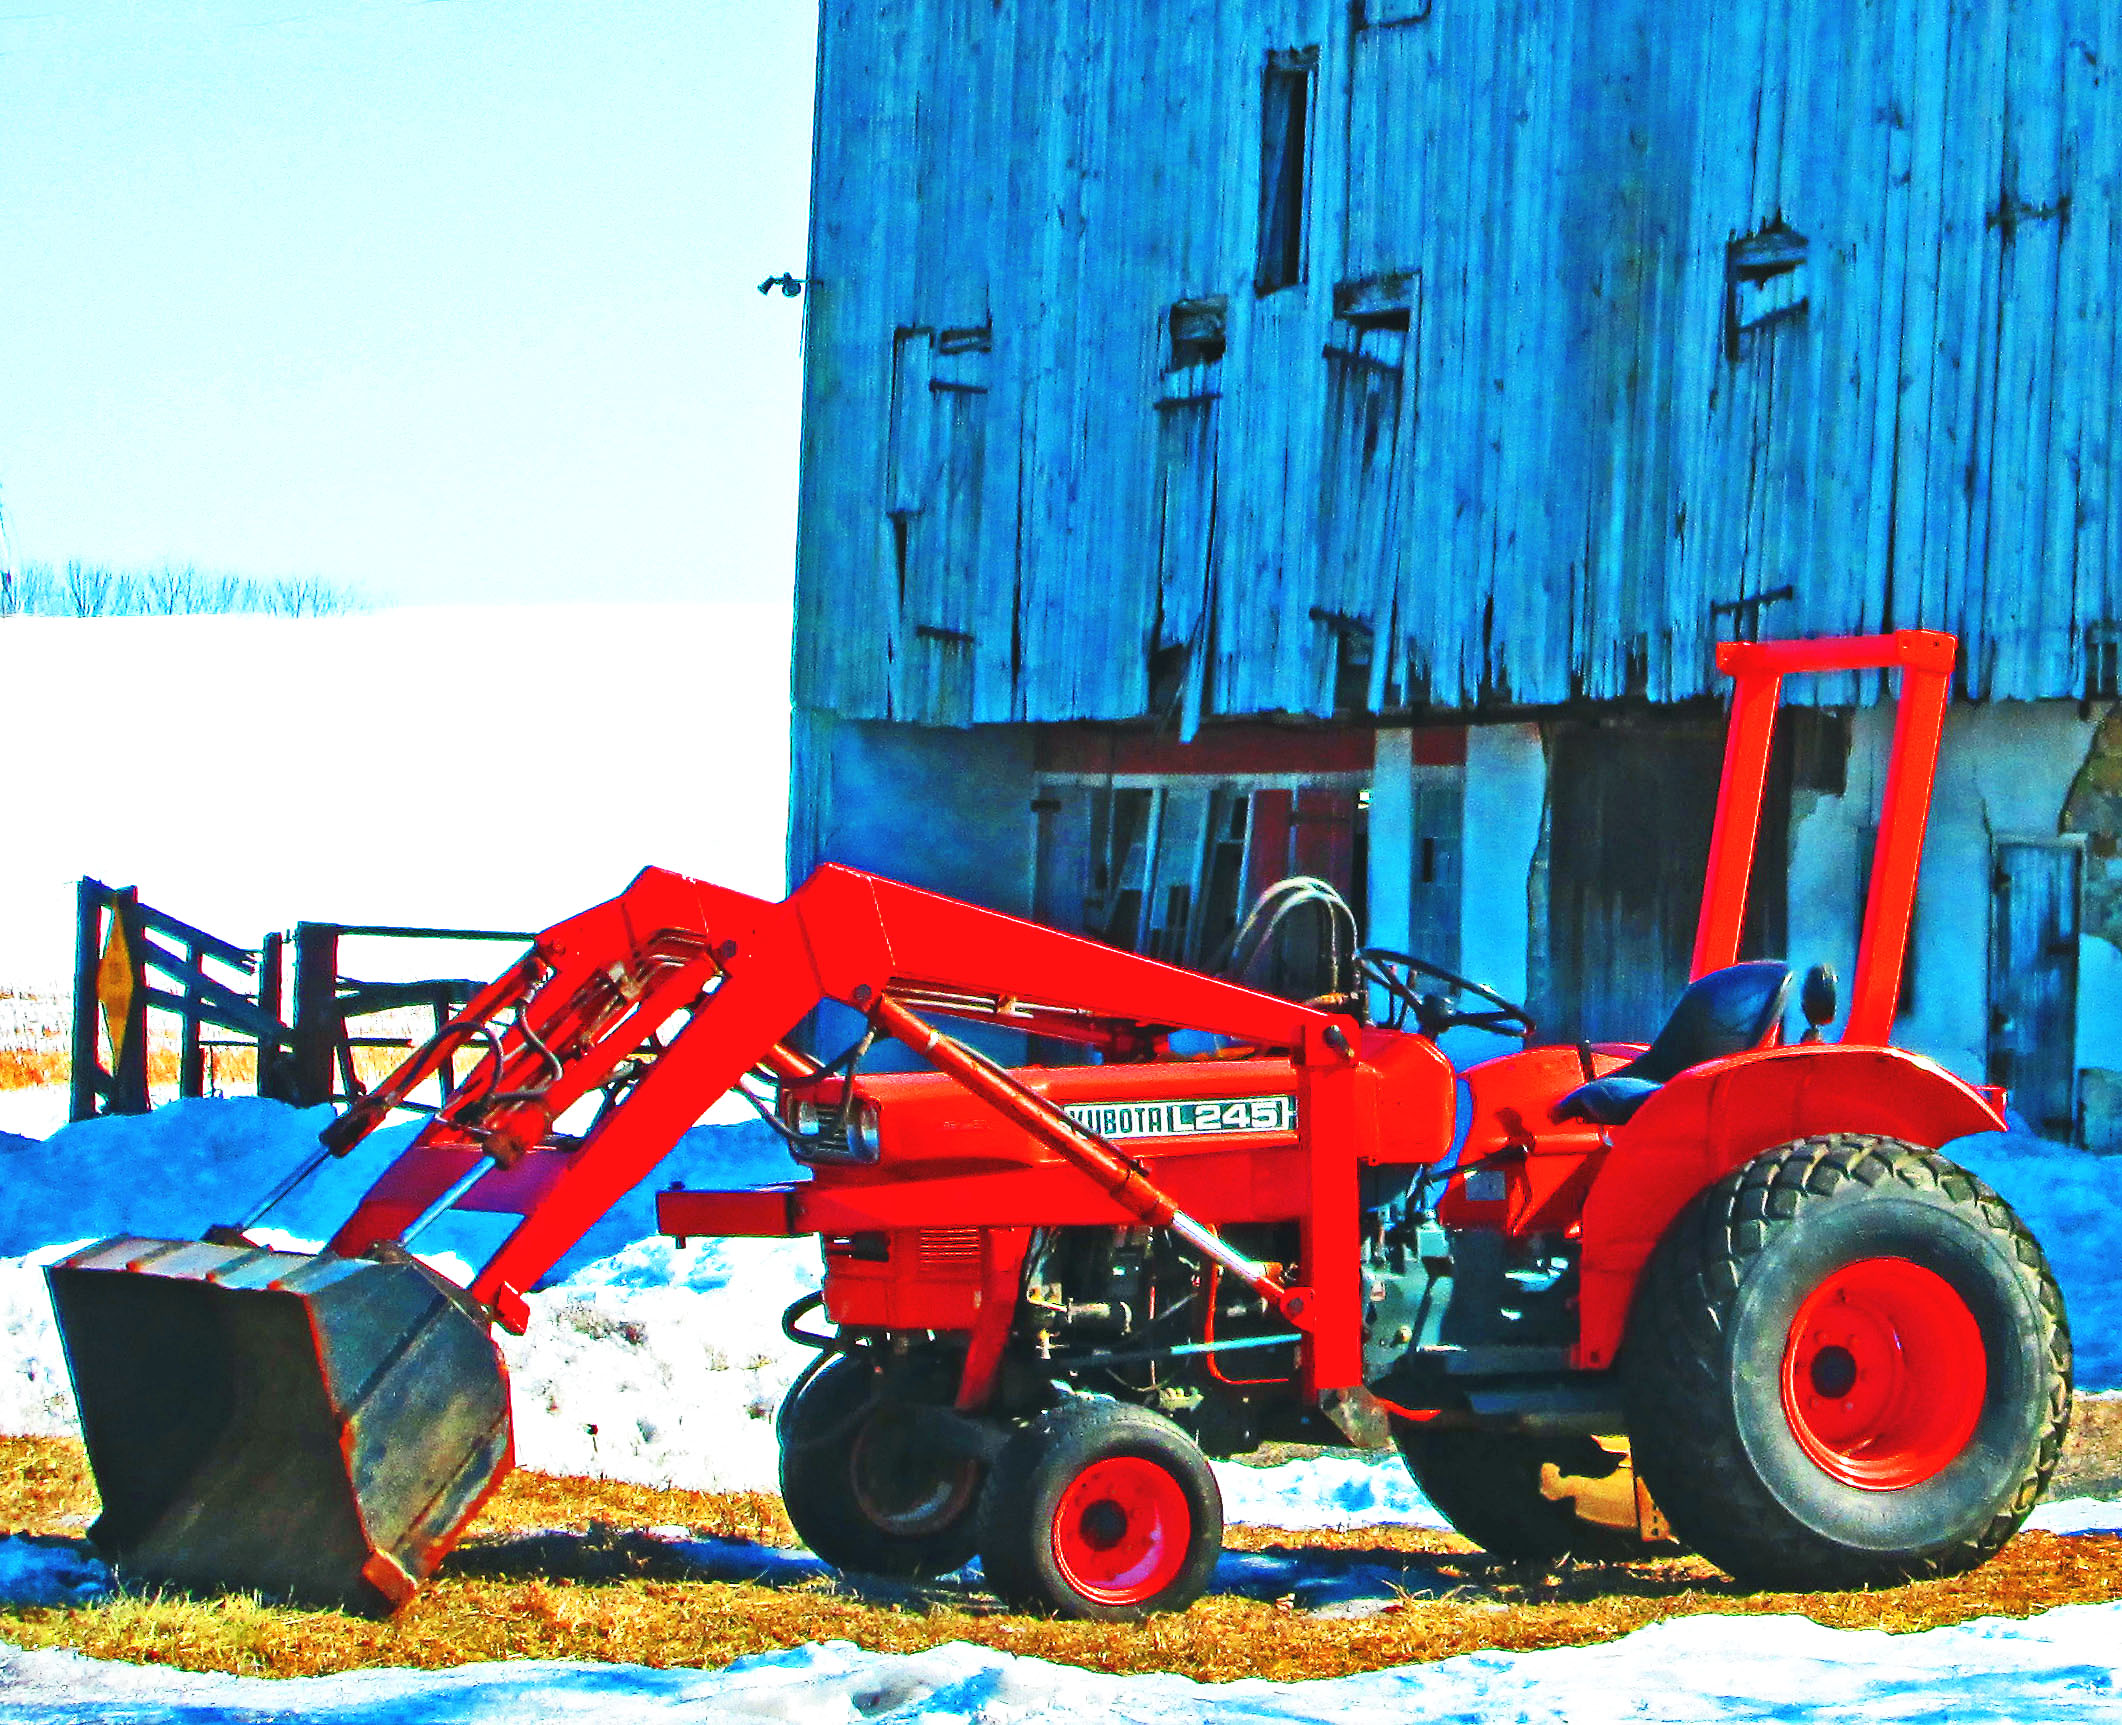 Red Kubota L245 Tractor With Front End Loader